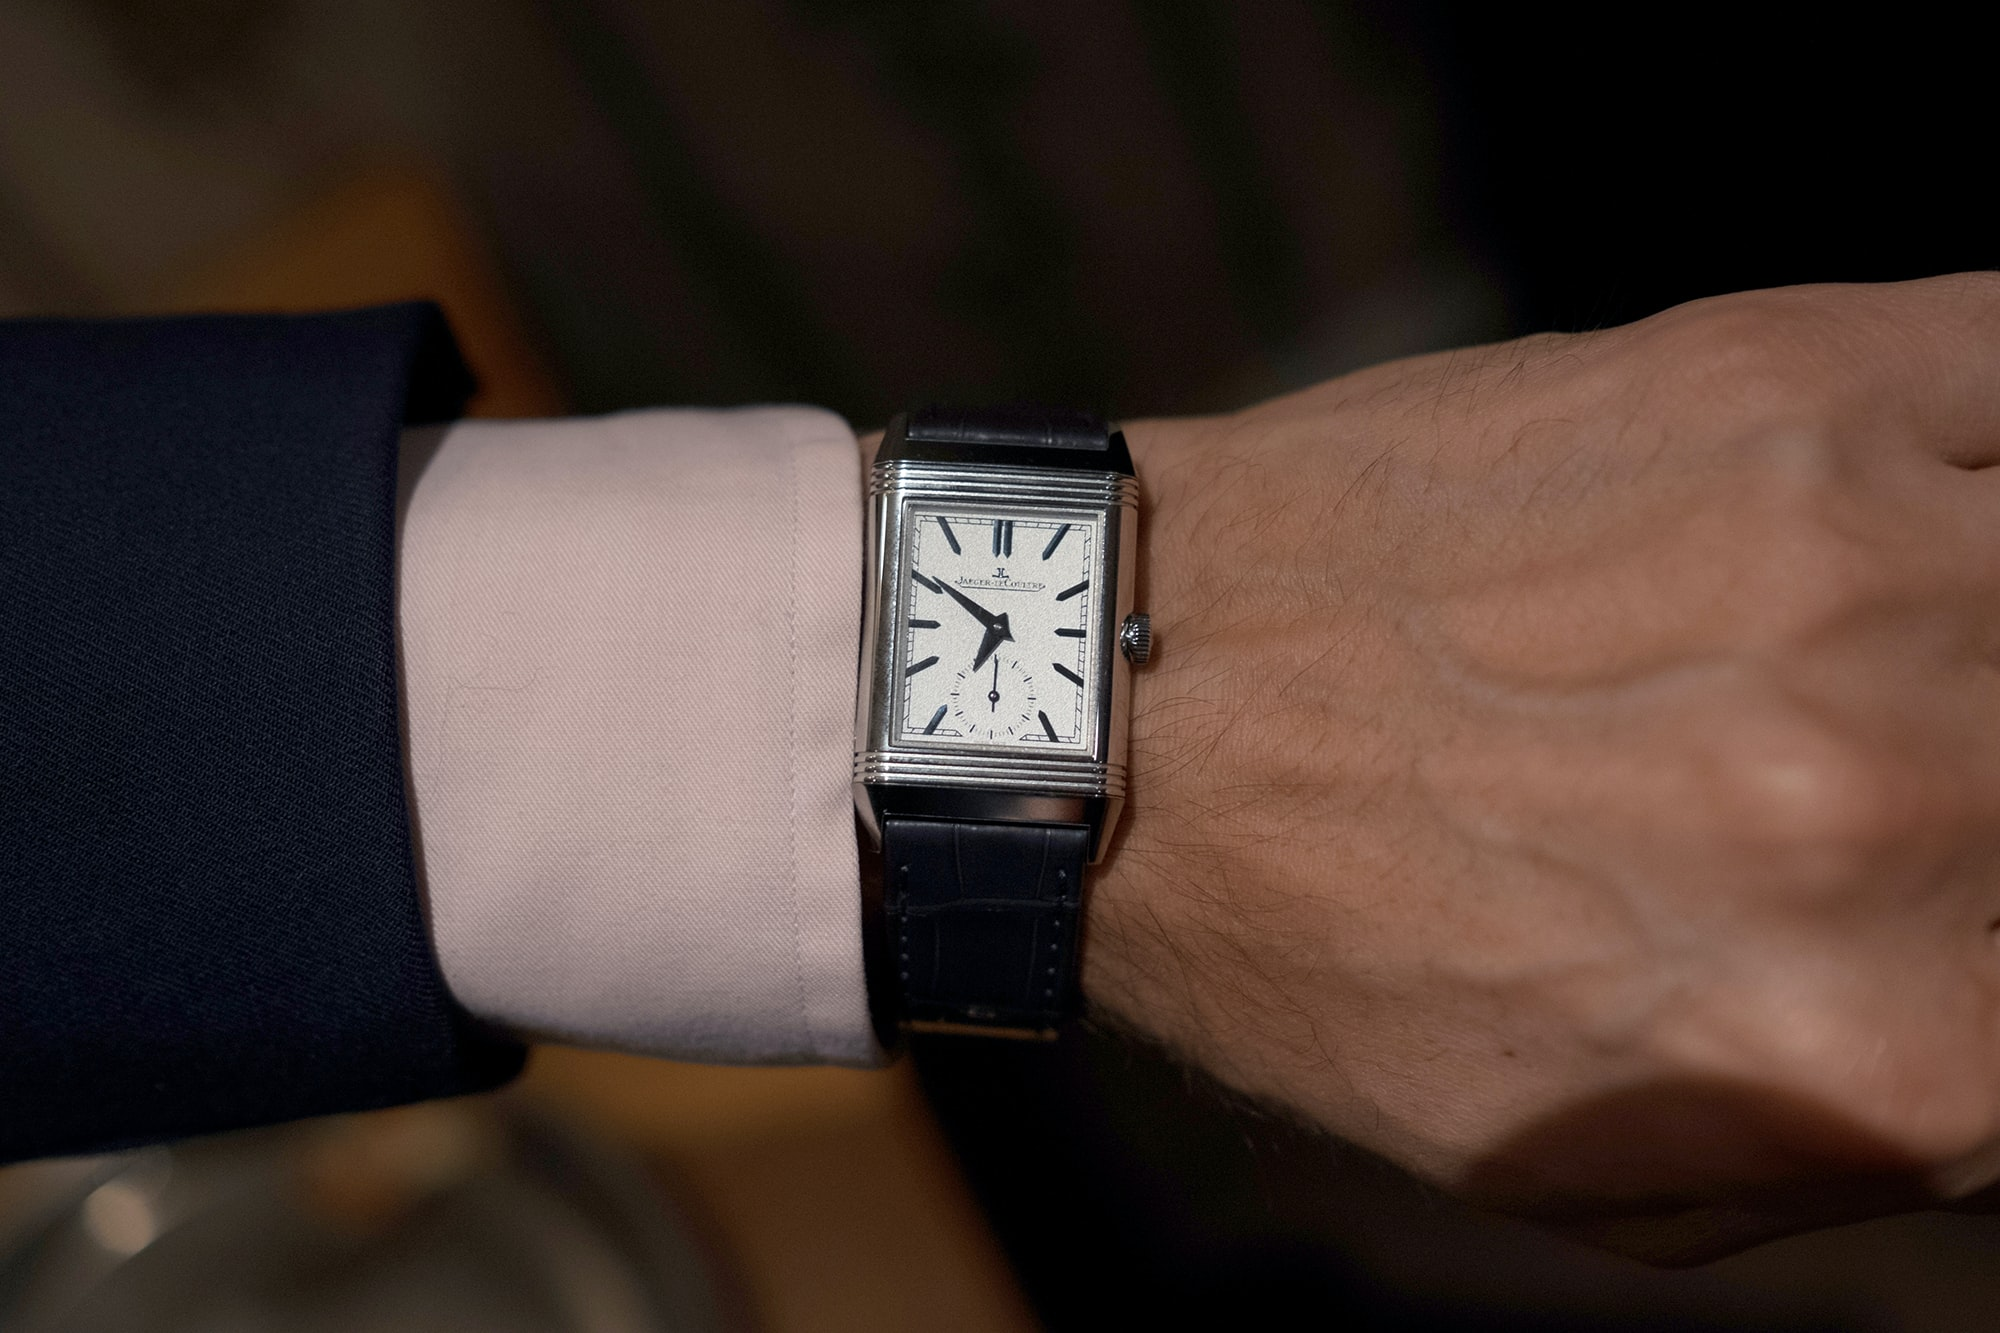 Photo Report: Watch Spotting At The HODINKEE Meet-Up In London (Plus Our Holiday 2016 Pop-Up At Harrods) Photo Report: Watch Spotting At The HODINKEE Meet-Up In London (Plus Our Holiday 2016 Pop-Up At Harrods) Hodinkee event 29 nov 2016 25